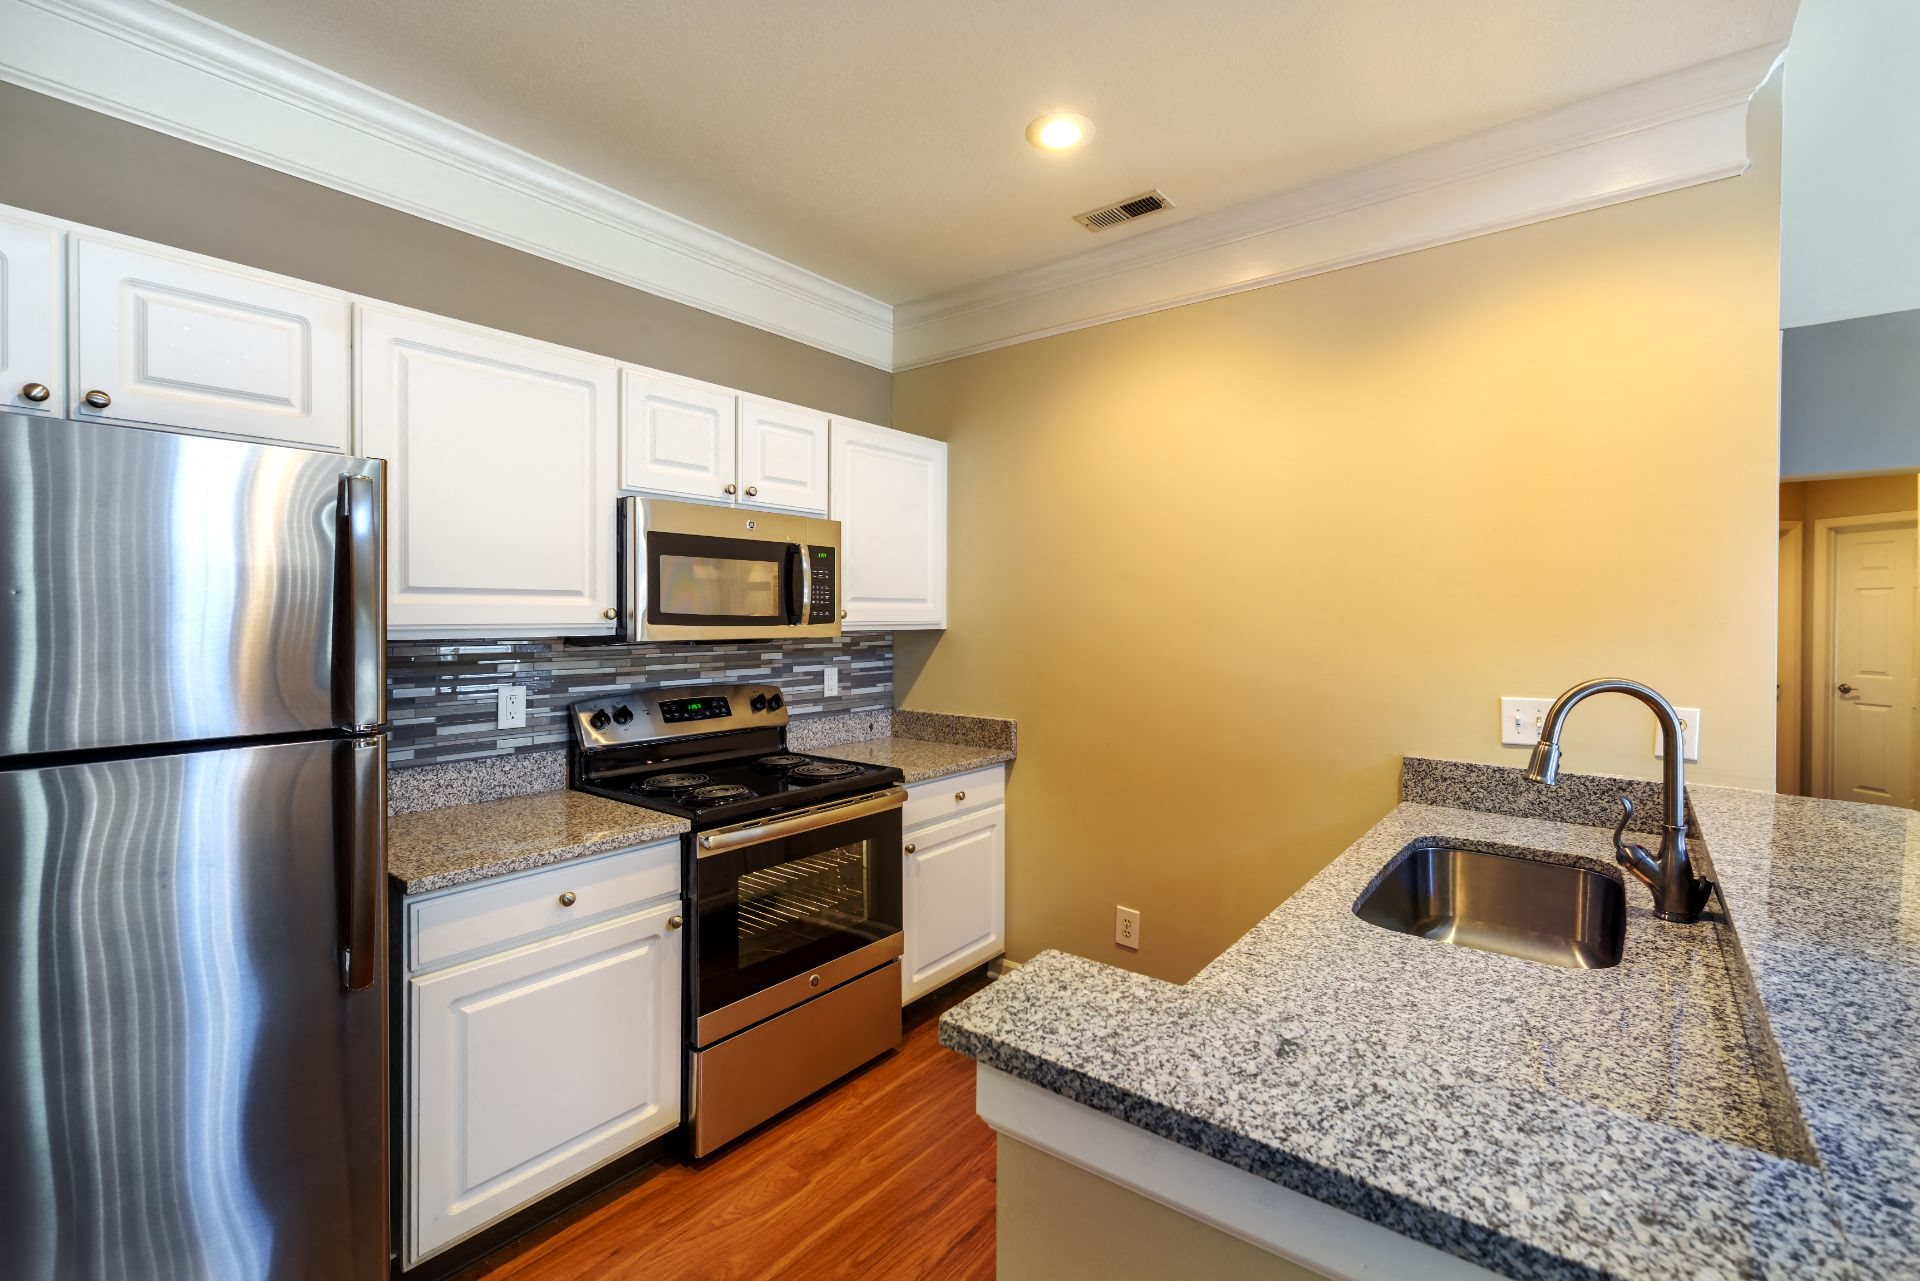 Christopher Wren Apartments, 501 Christopher Wren Drive, Wexford, PA 15090 Chef's Kitchen with Stainless Appliances